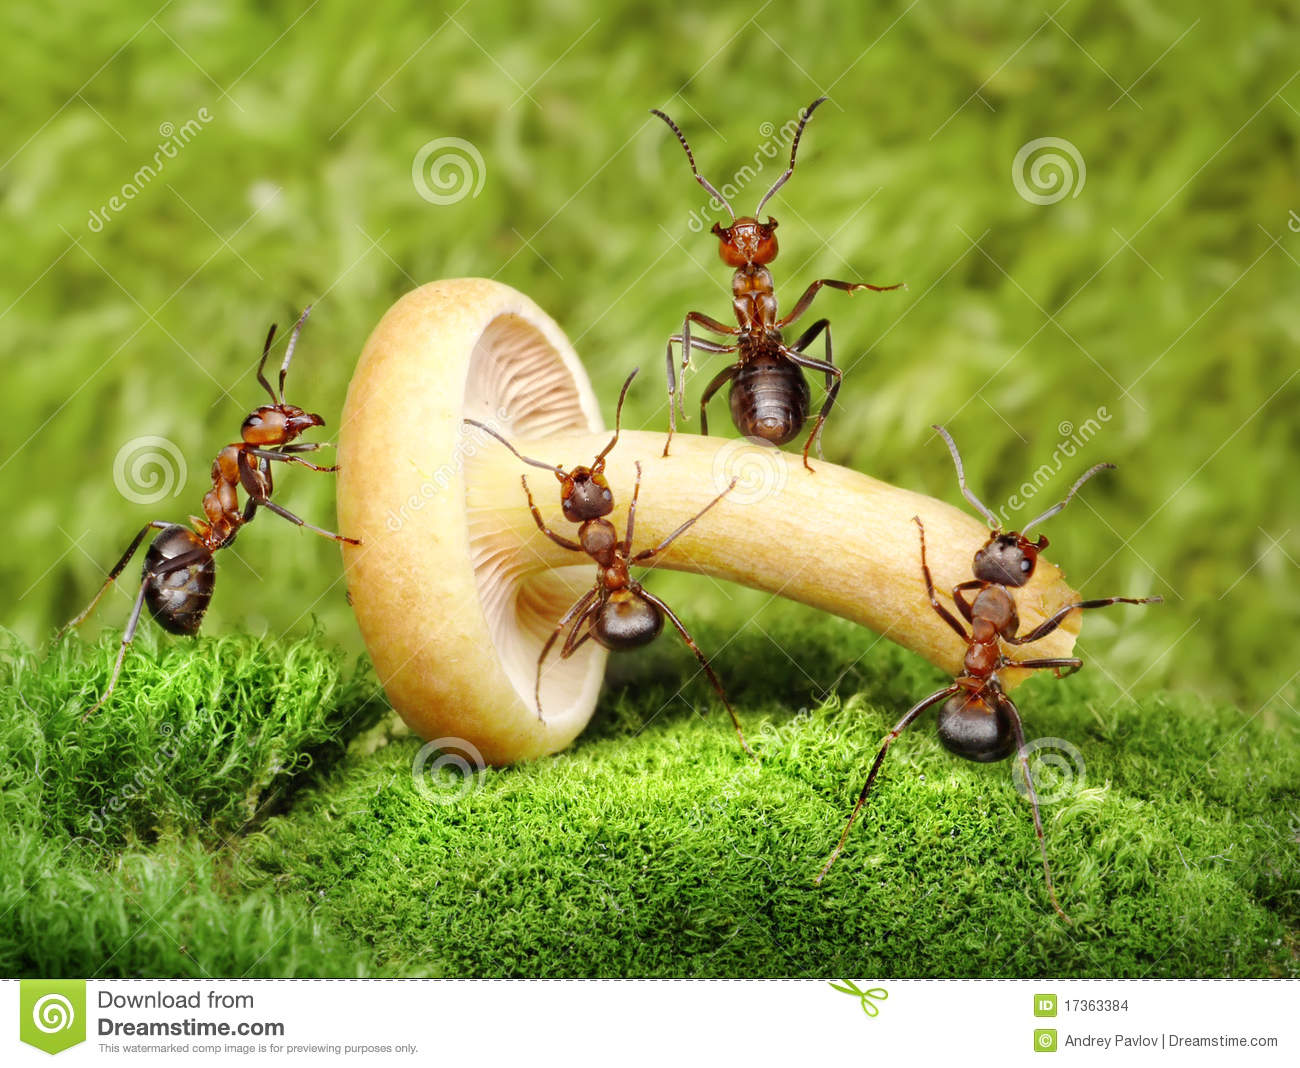 Team Of Ants Work With Mushroom, Teamwork Stock Images - Image ...